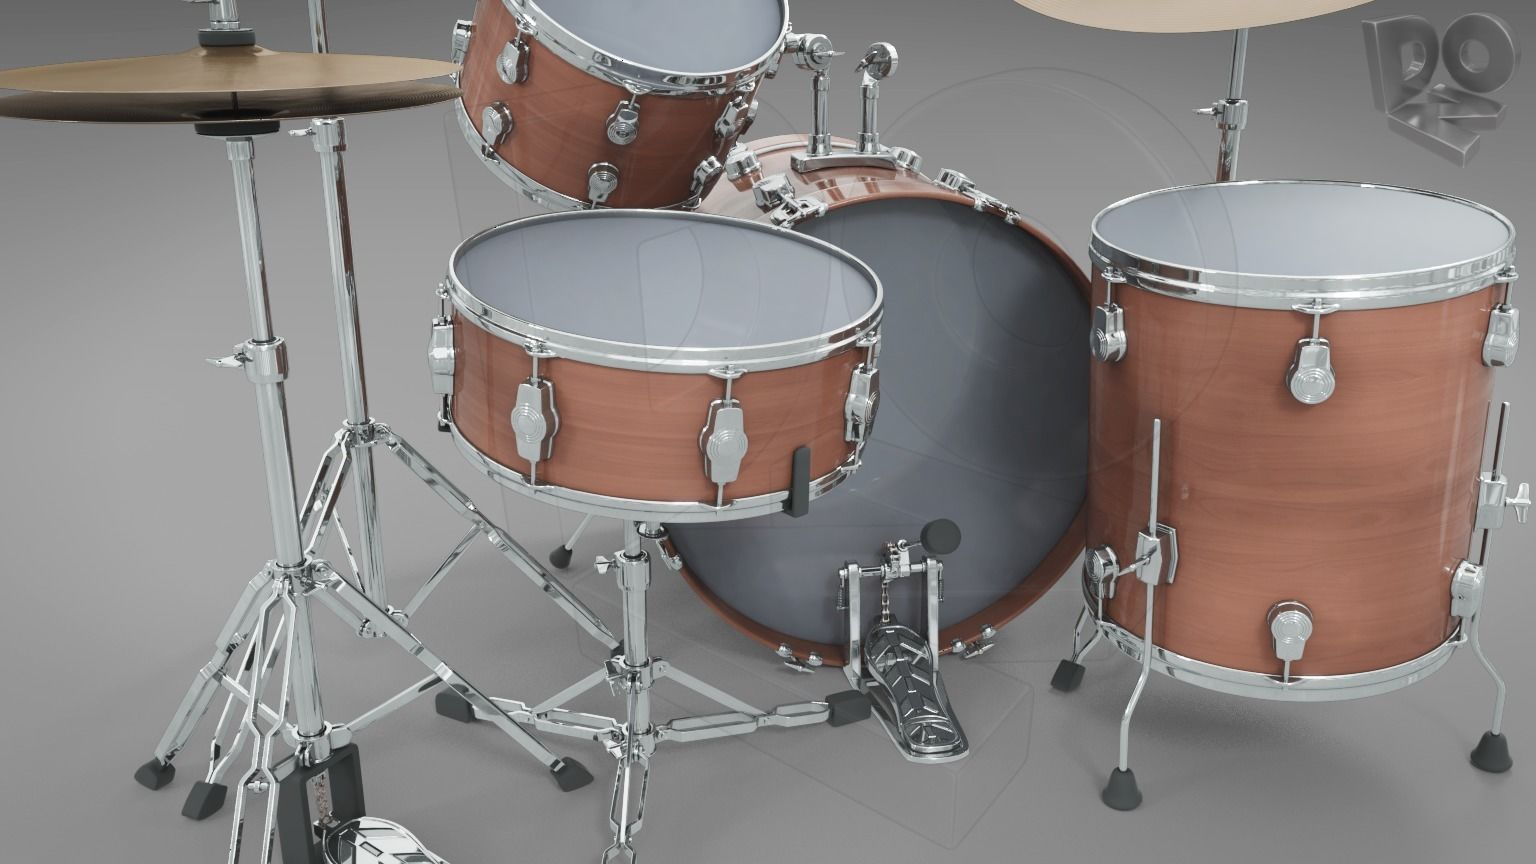 Basic drum set